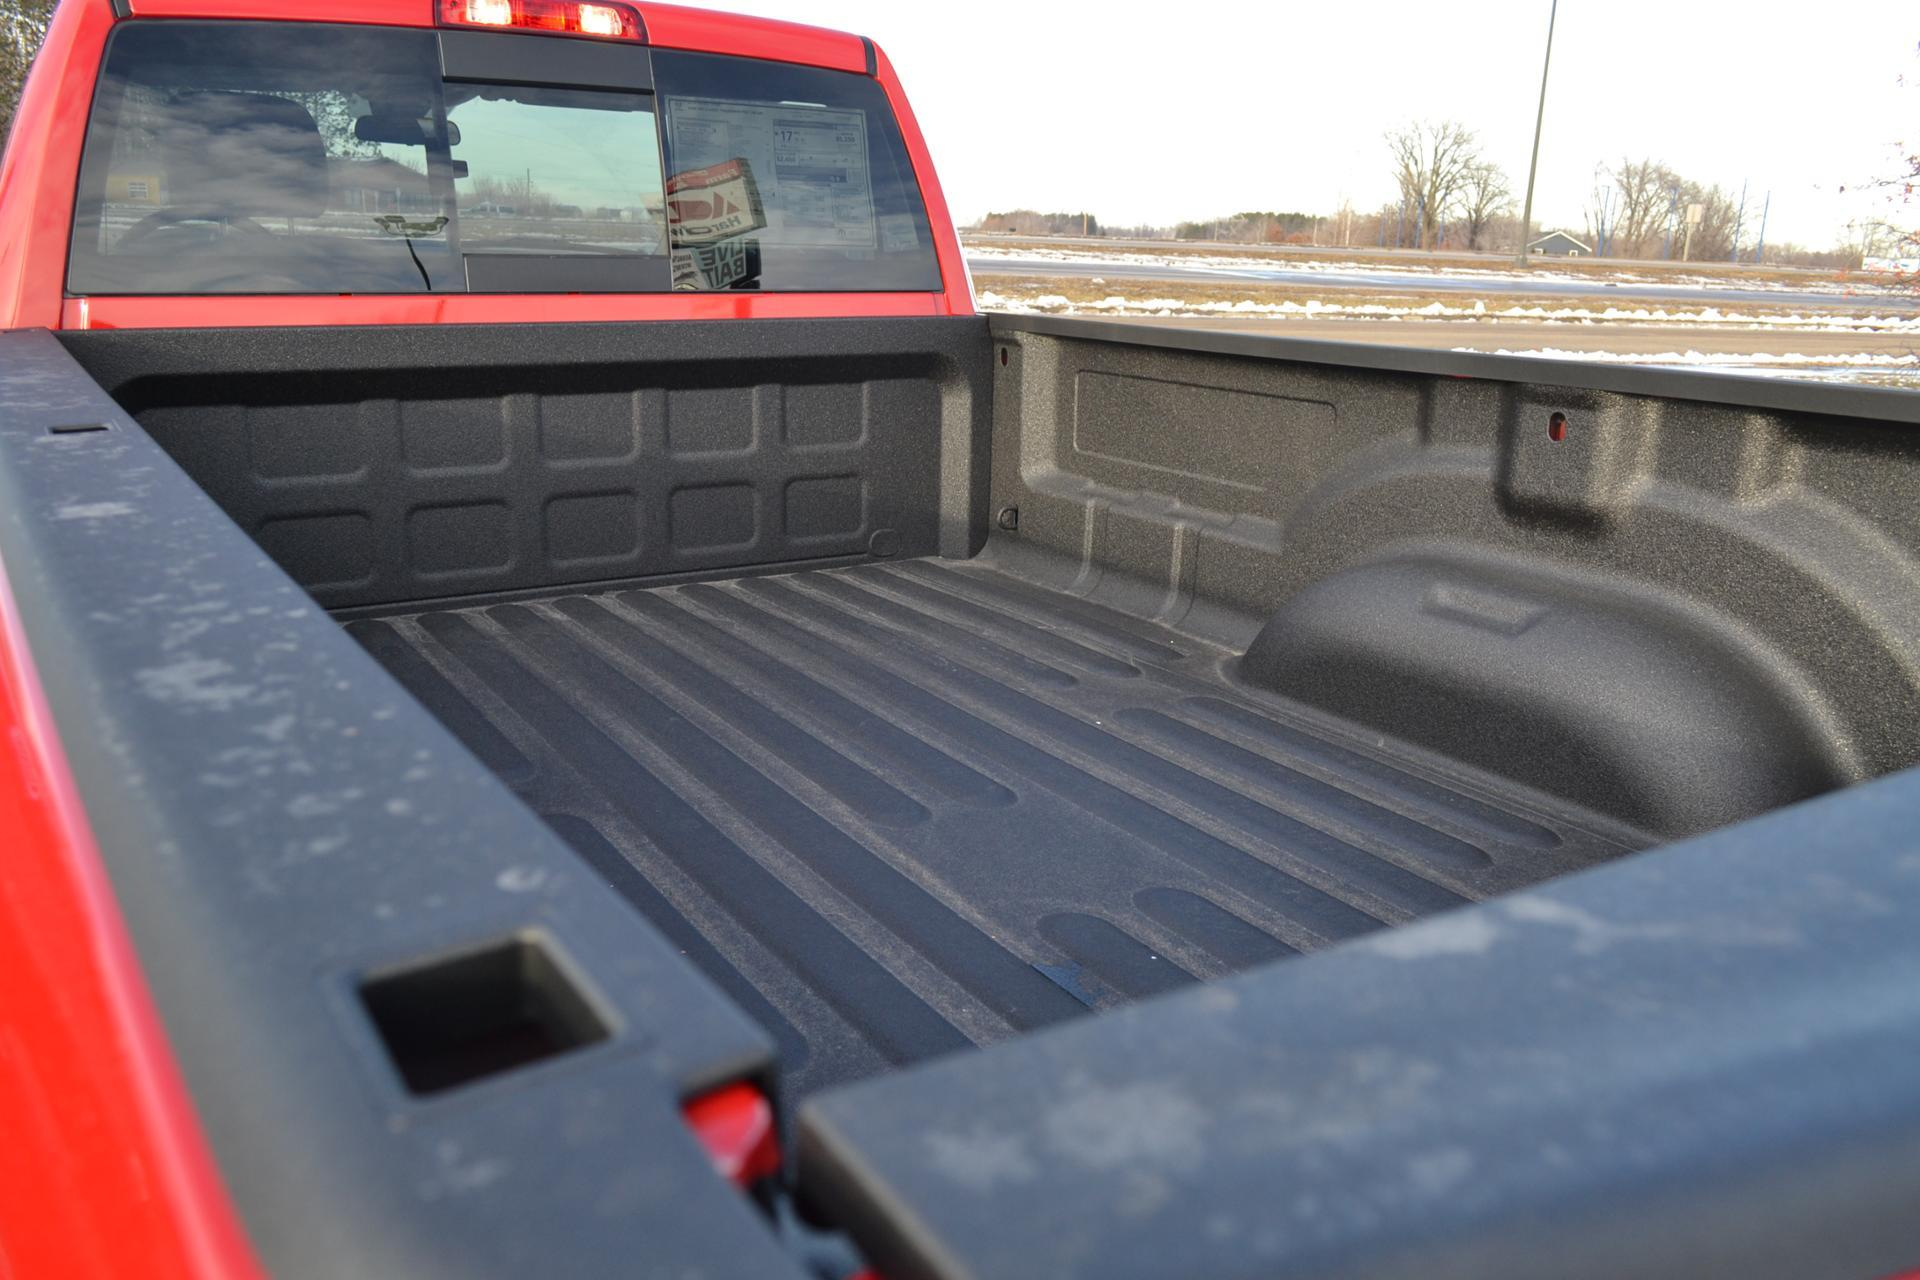 2019 Ram 1500 Regular Cab 4x4,  Pickup #19-433 - photo 7